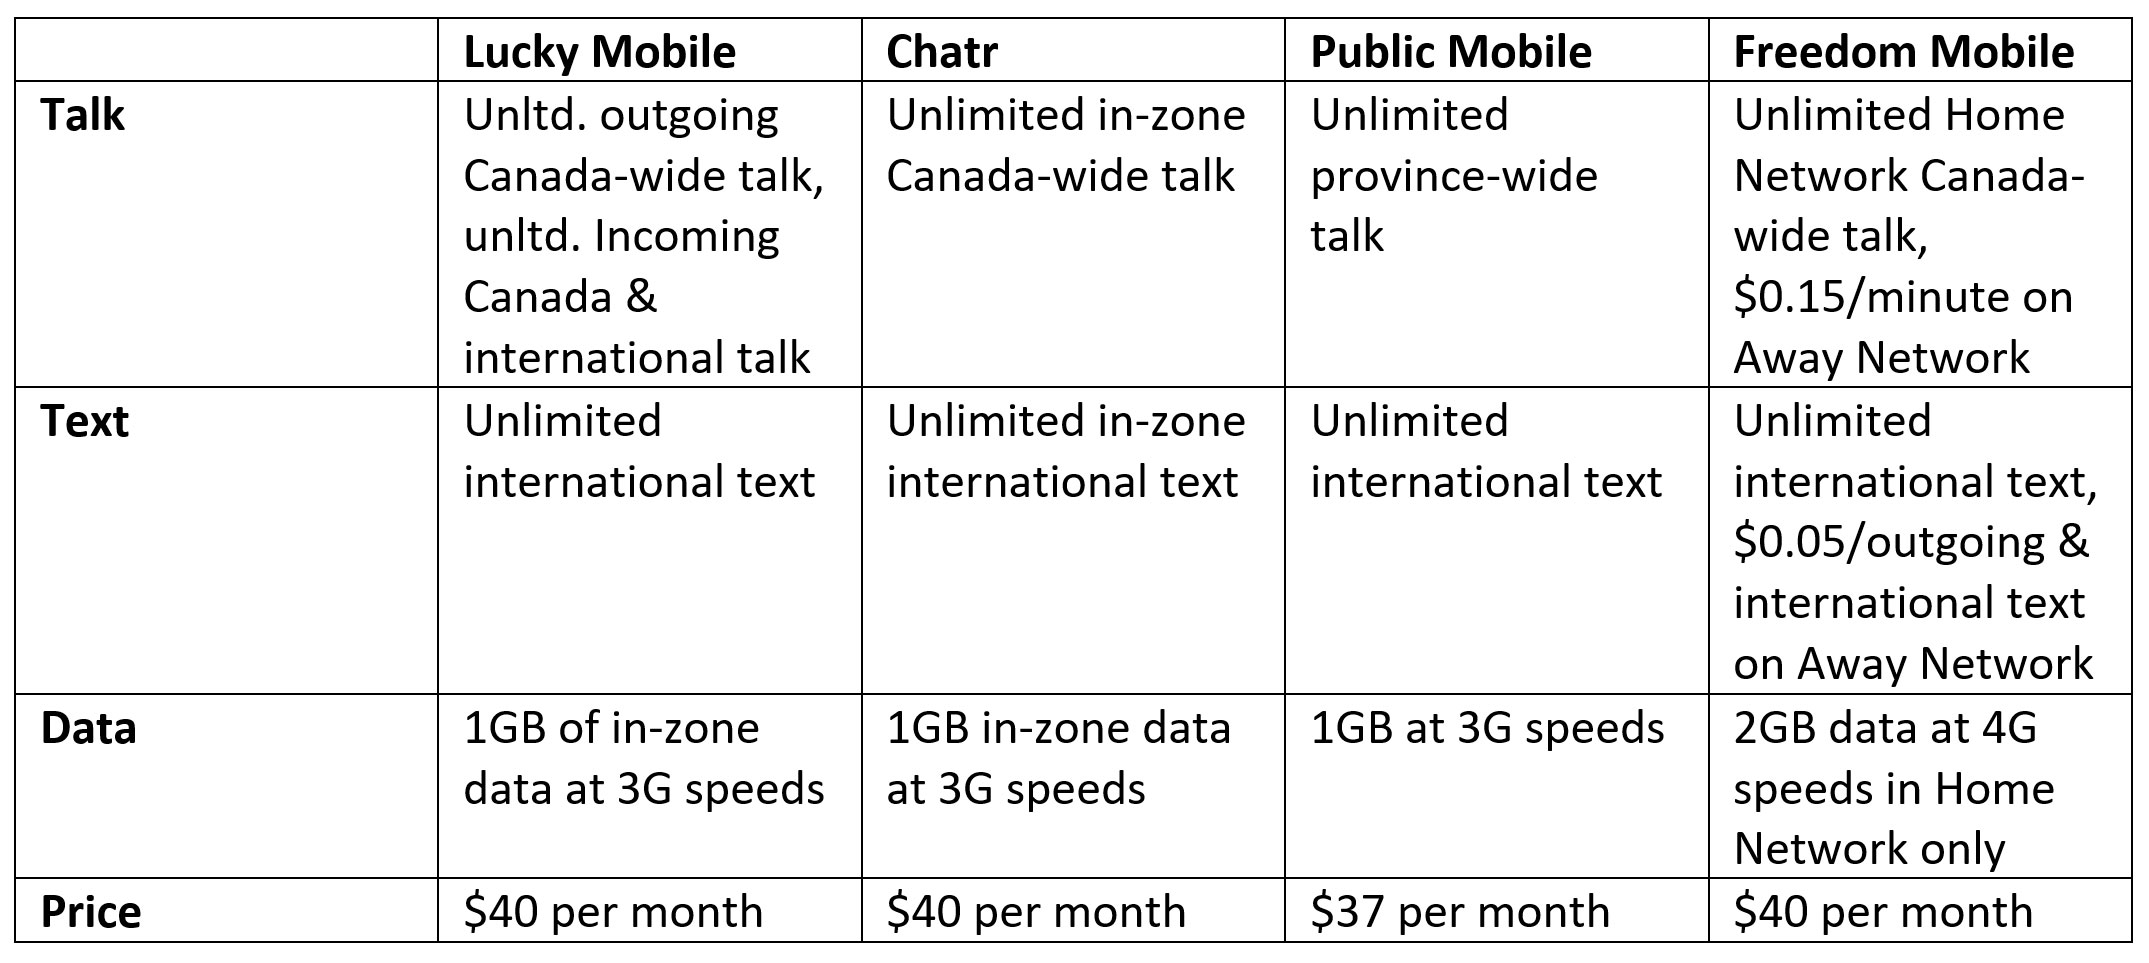 Lucky Mobile is a new prepaid wireless carrier from Bell